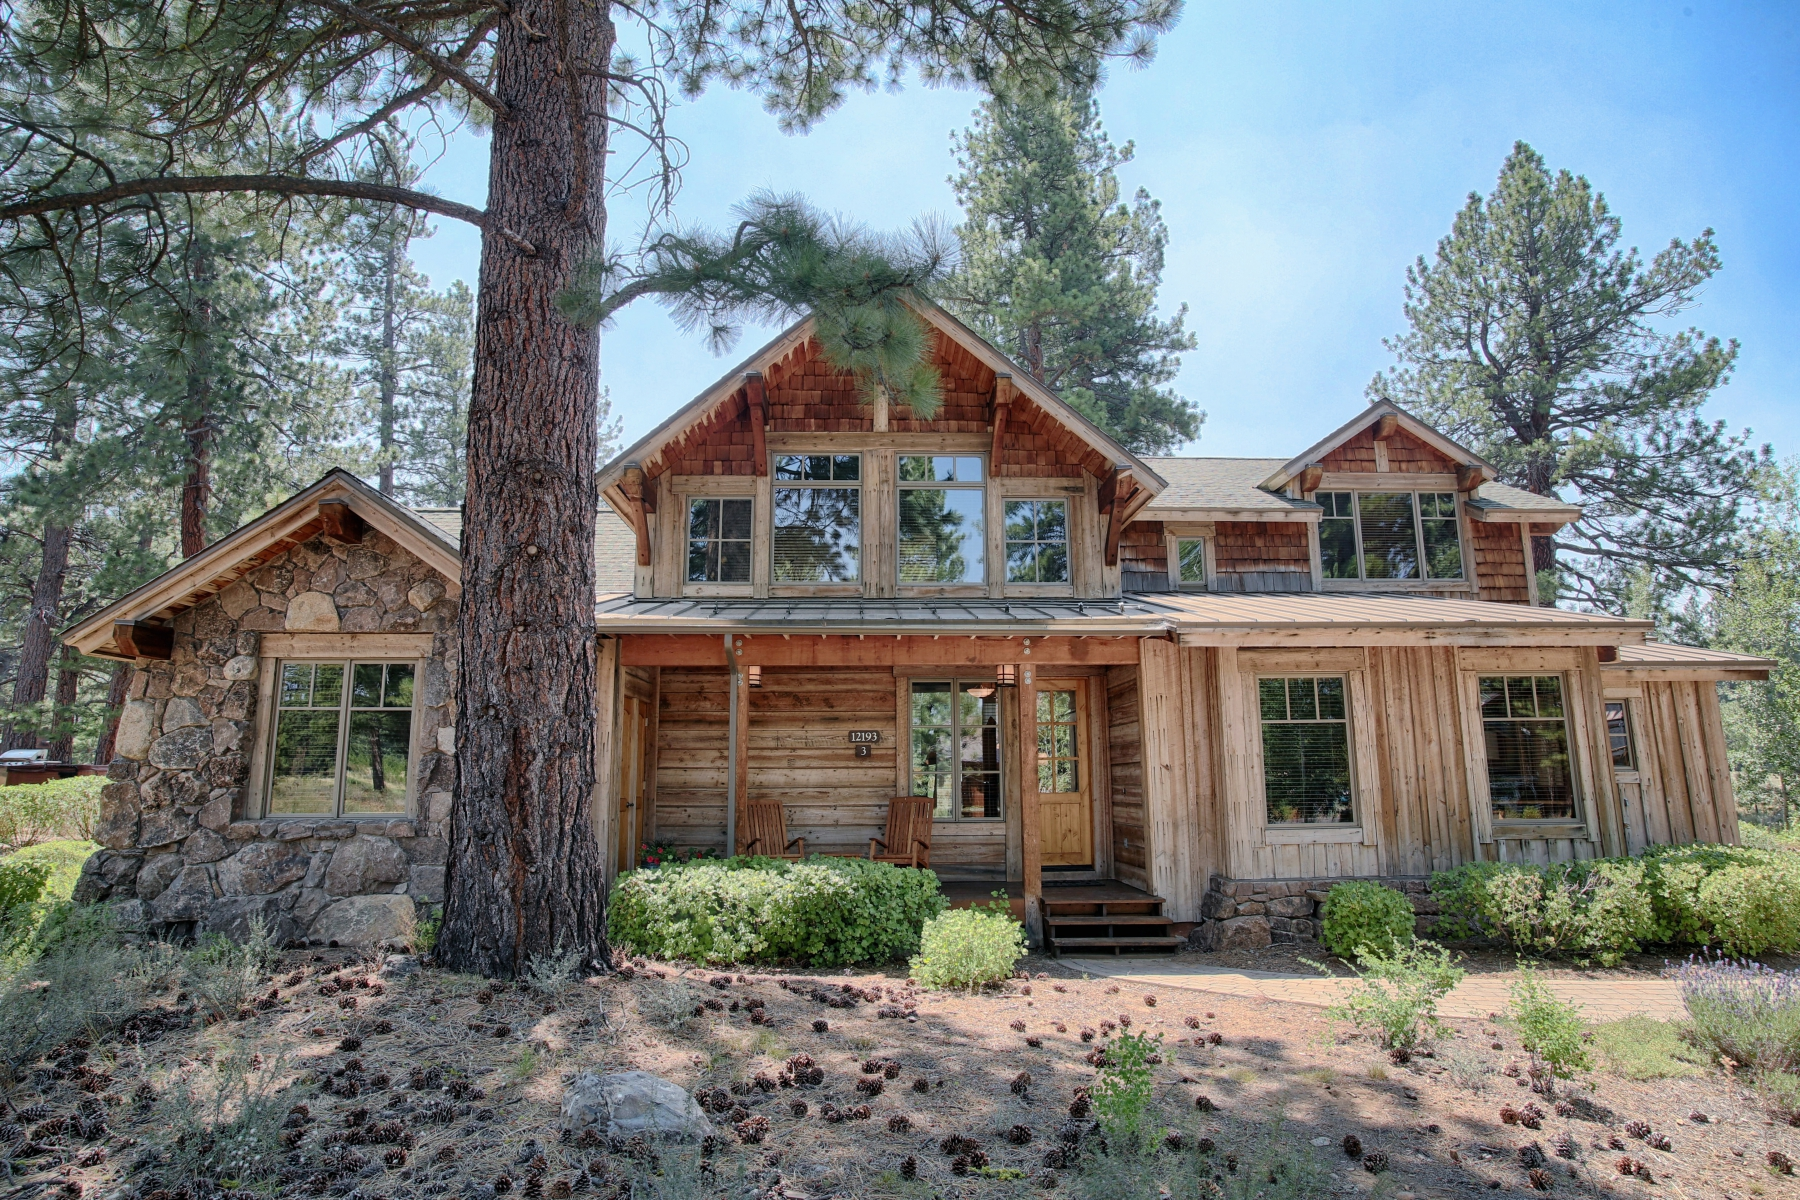 Single Family Home for Active at 12278 Frontier Trail, F24-32, Truckee, California 96161 12278 Frontier Trail F24-32 Truckee, California 96161 United States